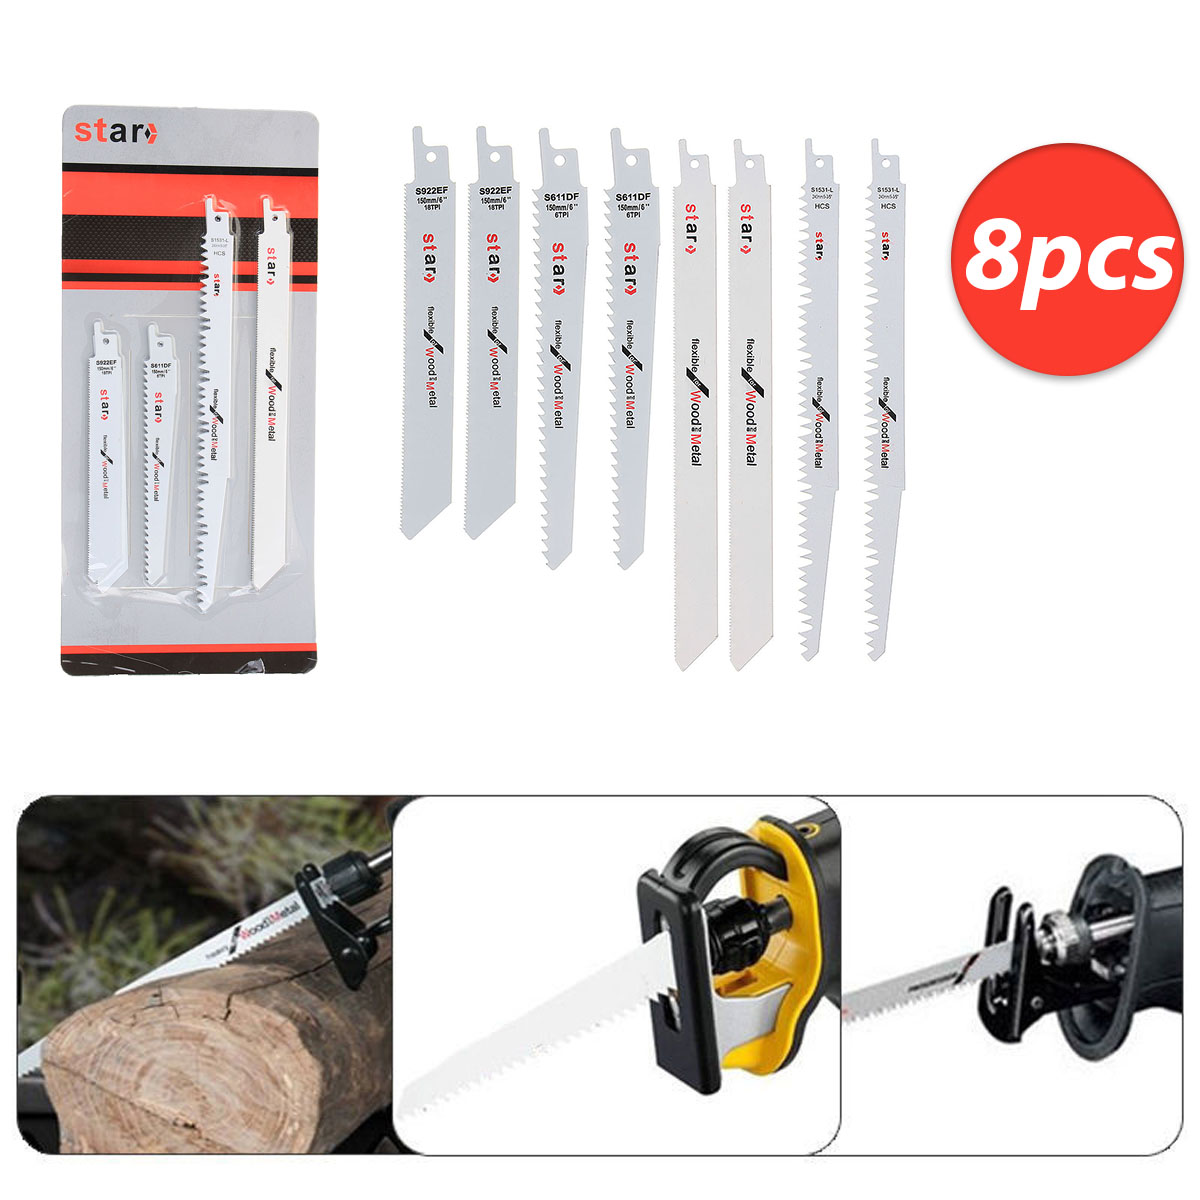 8pc Set Reciprocating Saw Blades Wood Metal Cutter Blade For Makita Hitach недорого